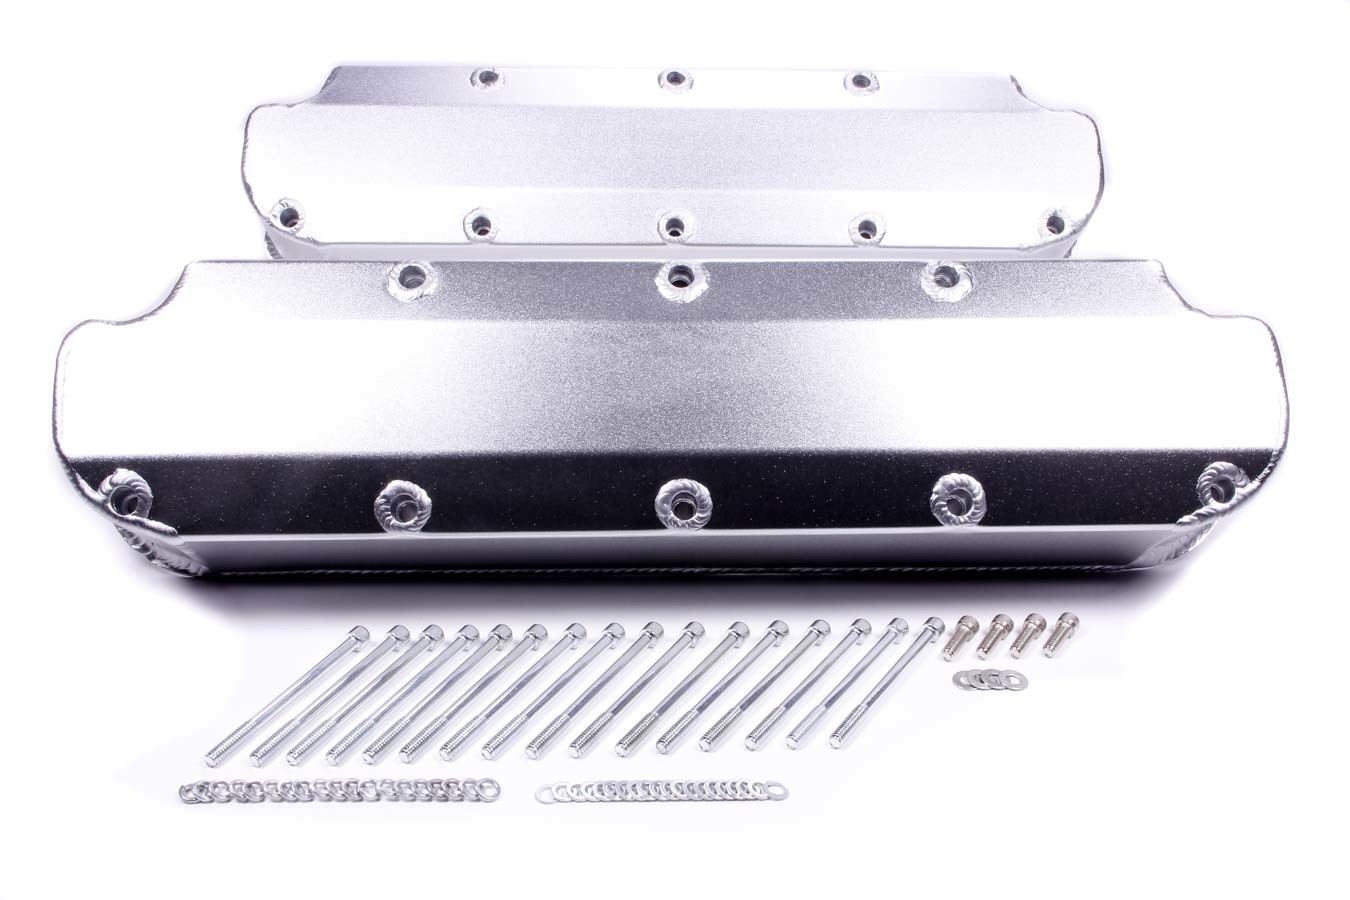 PRW Industries 4036000 Valve Cover, Stock Height, Hardware Included, Aluminum, Silver Anodized, Small Block Mopar, Pair